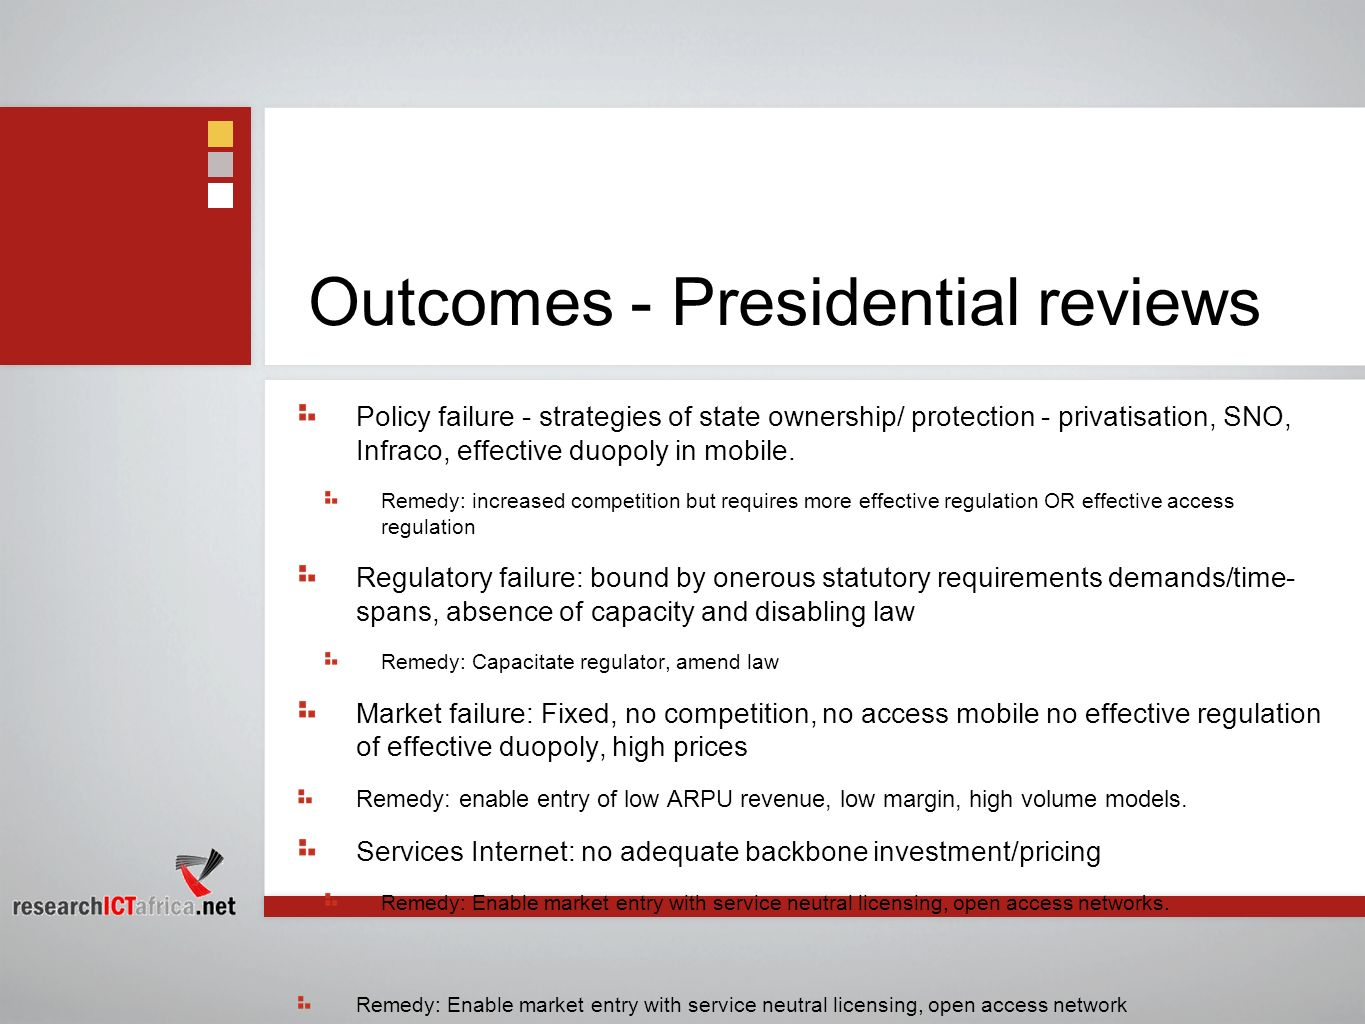 Outcomes - Presidential reviews